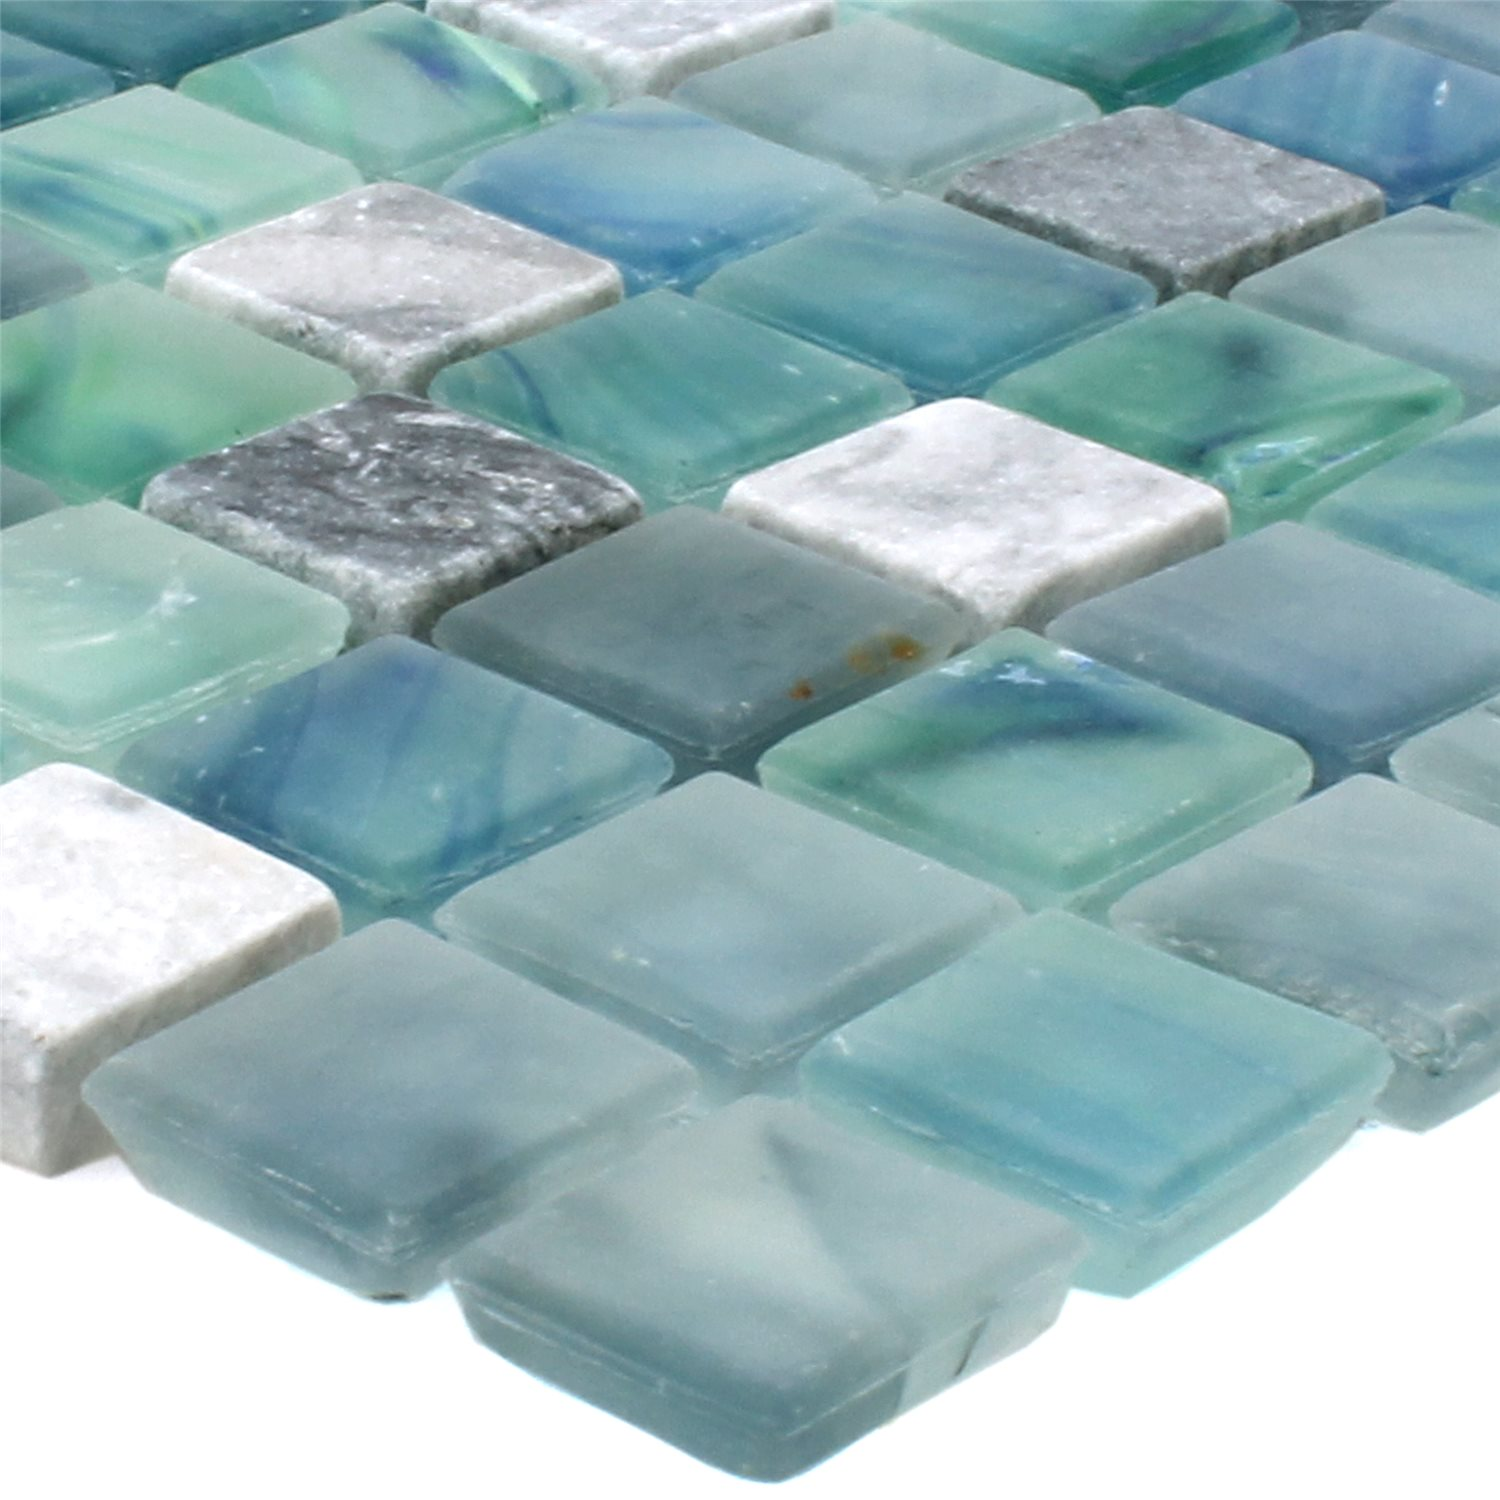 Carrelage mosa que mayon verre marbre mix seevert tm33724 for Mosaique carrelage verre